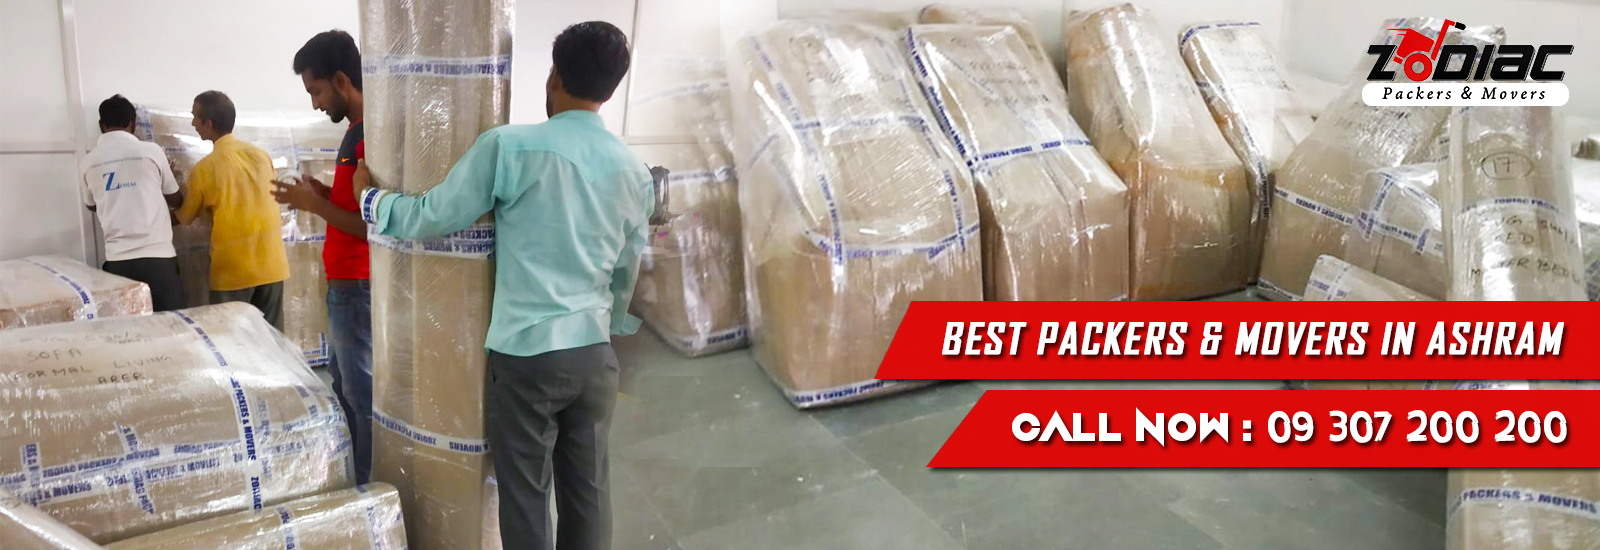 Packers and Movers in Ashram